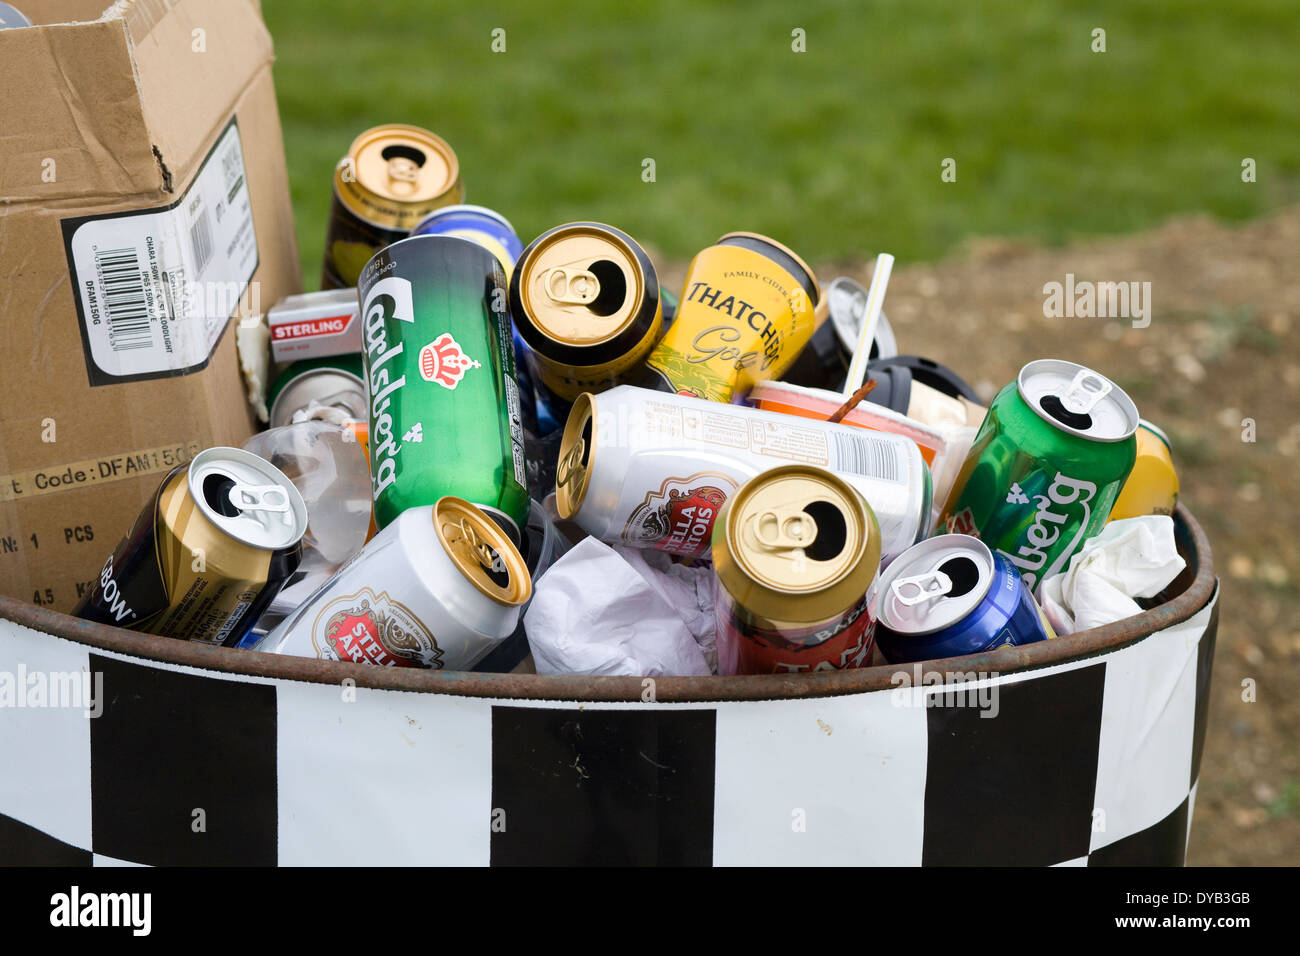 Empty beer and Larger can in a trash can at a festival - Stock Image